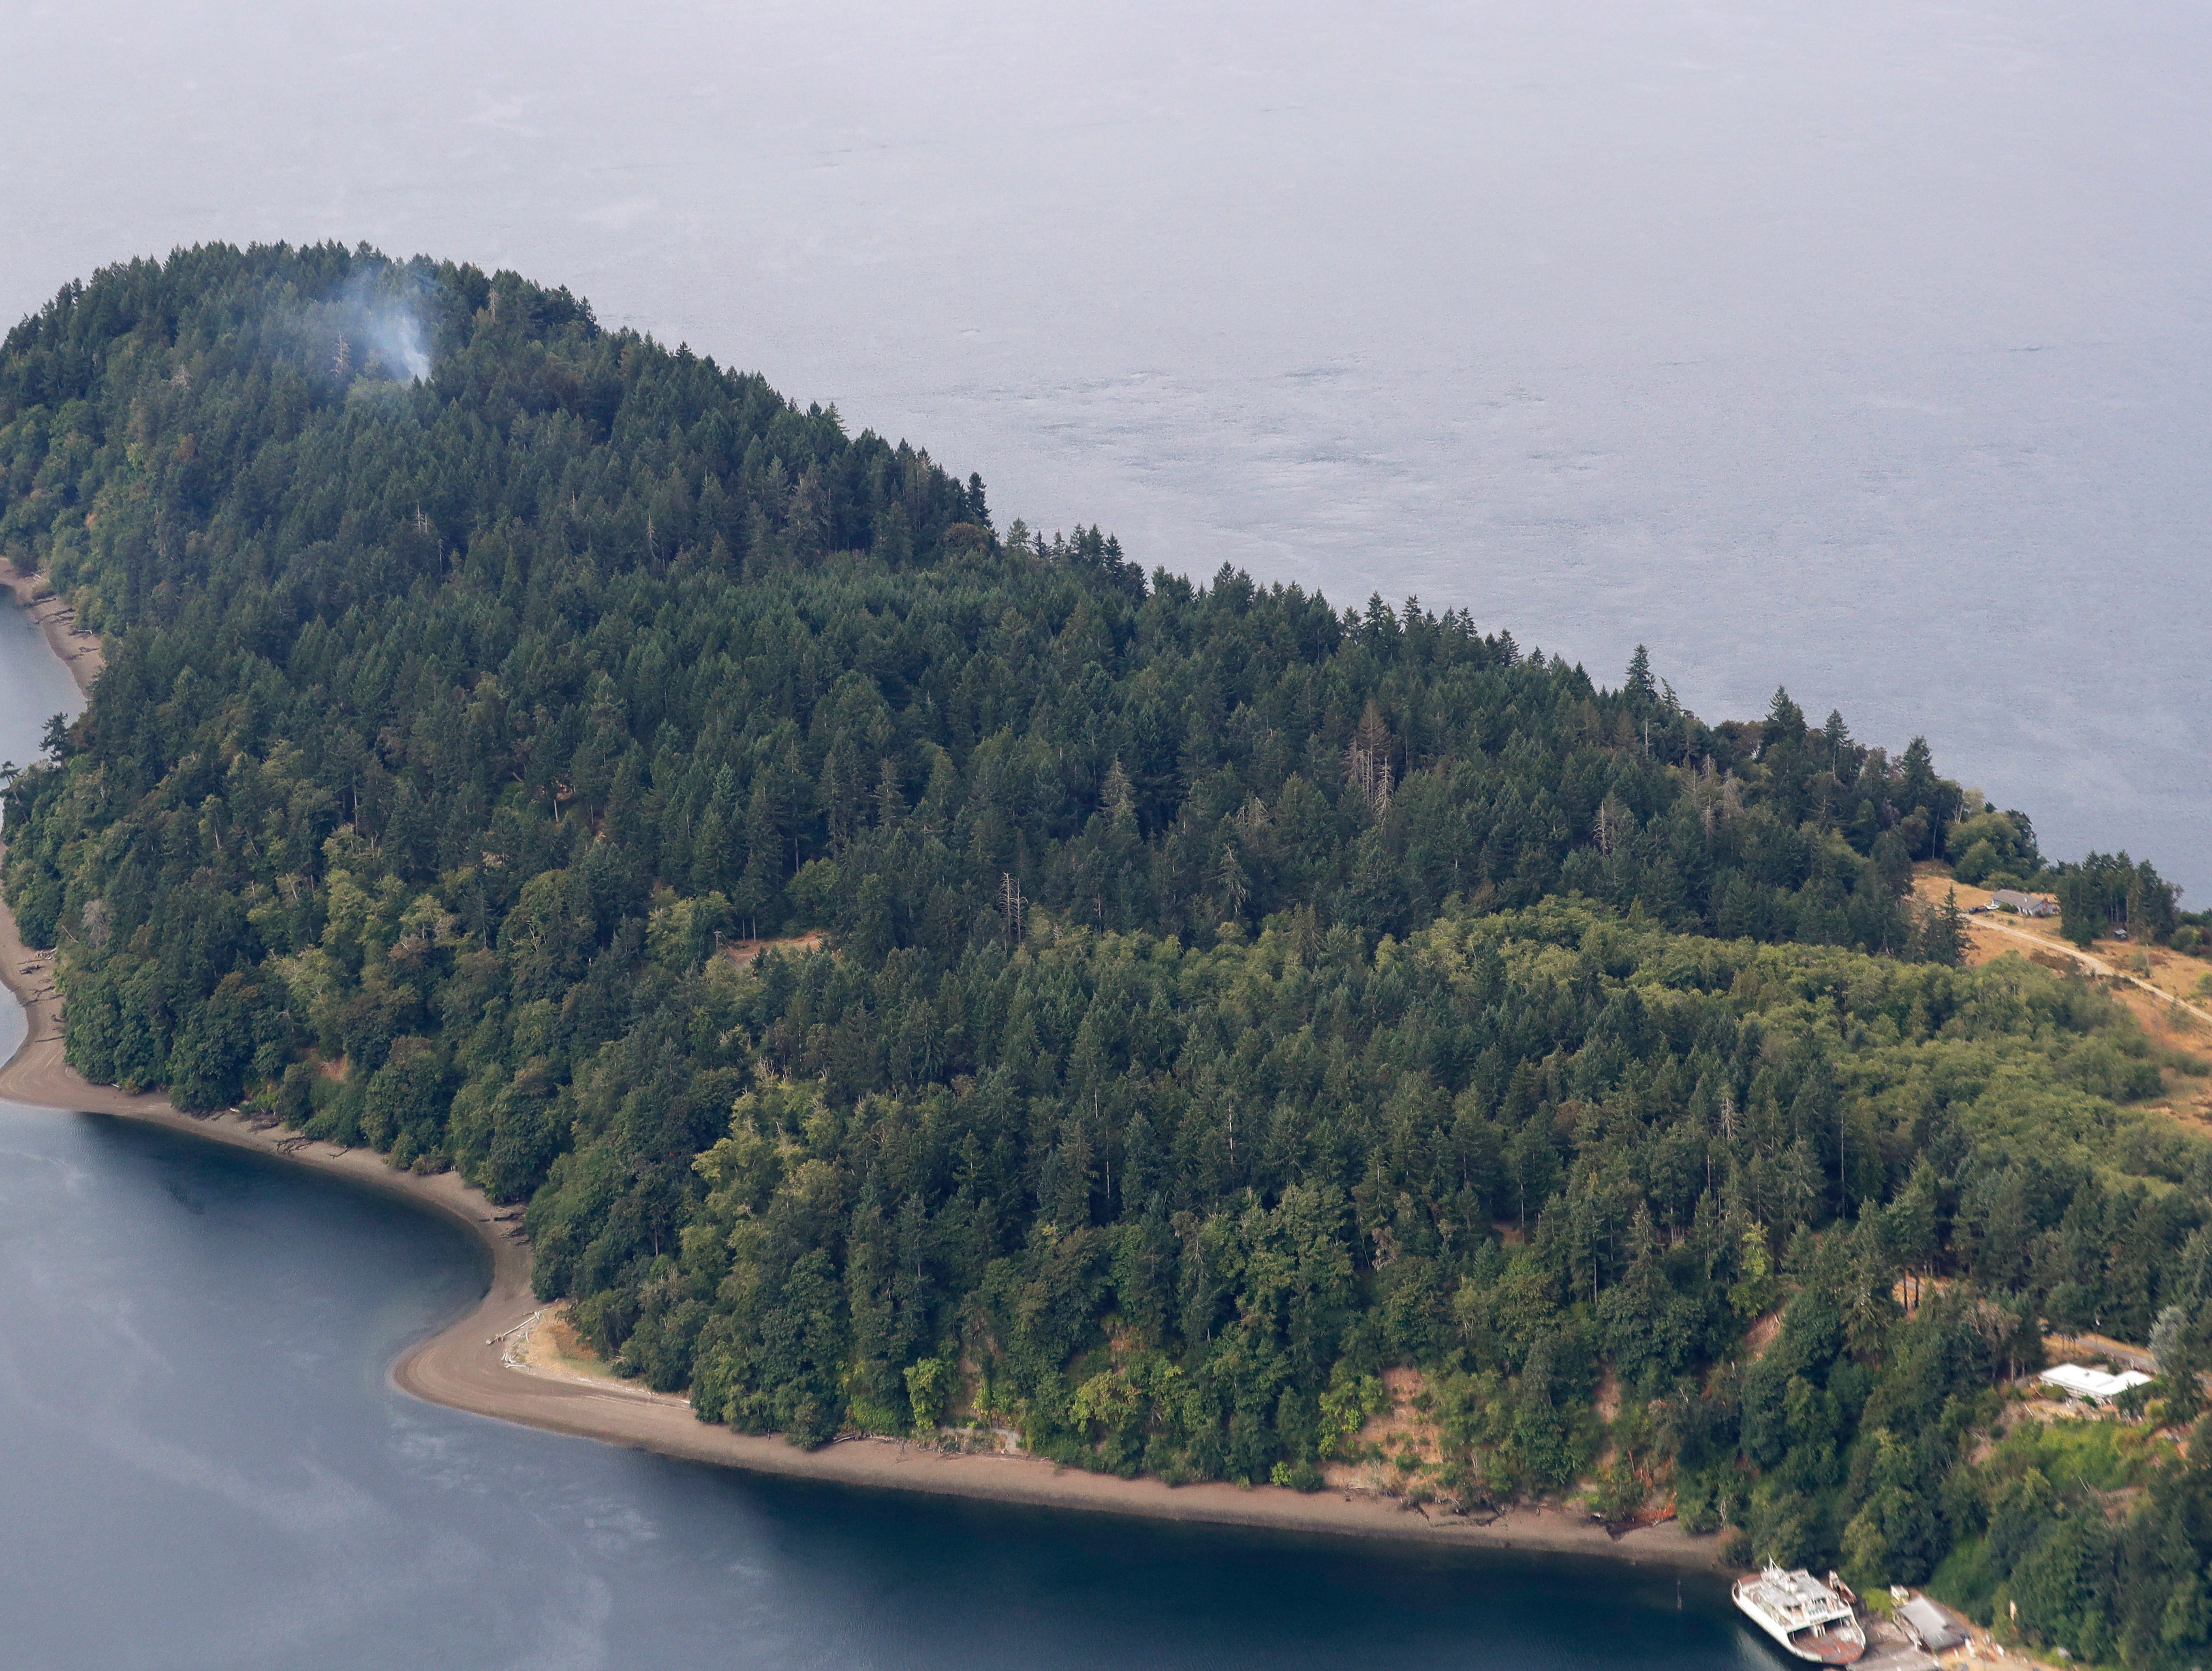 FILE - In this Aug. 11, 2018, file photo, smoke rises from the site on Ketron Island in Washington state where a Horizon Air turboprop plane crashed after it was stolen from Sea-Tac International Airport, as seen from the air near Steilacoom, Wash. The story was voted among the state's top news stories of 2018 by Associated Press staff and member editors. (AP Photo/Ted S. Warren, File)